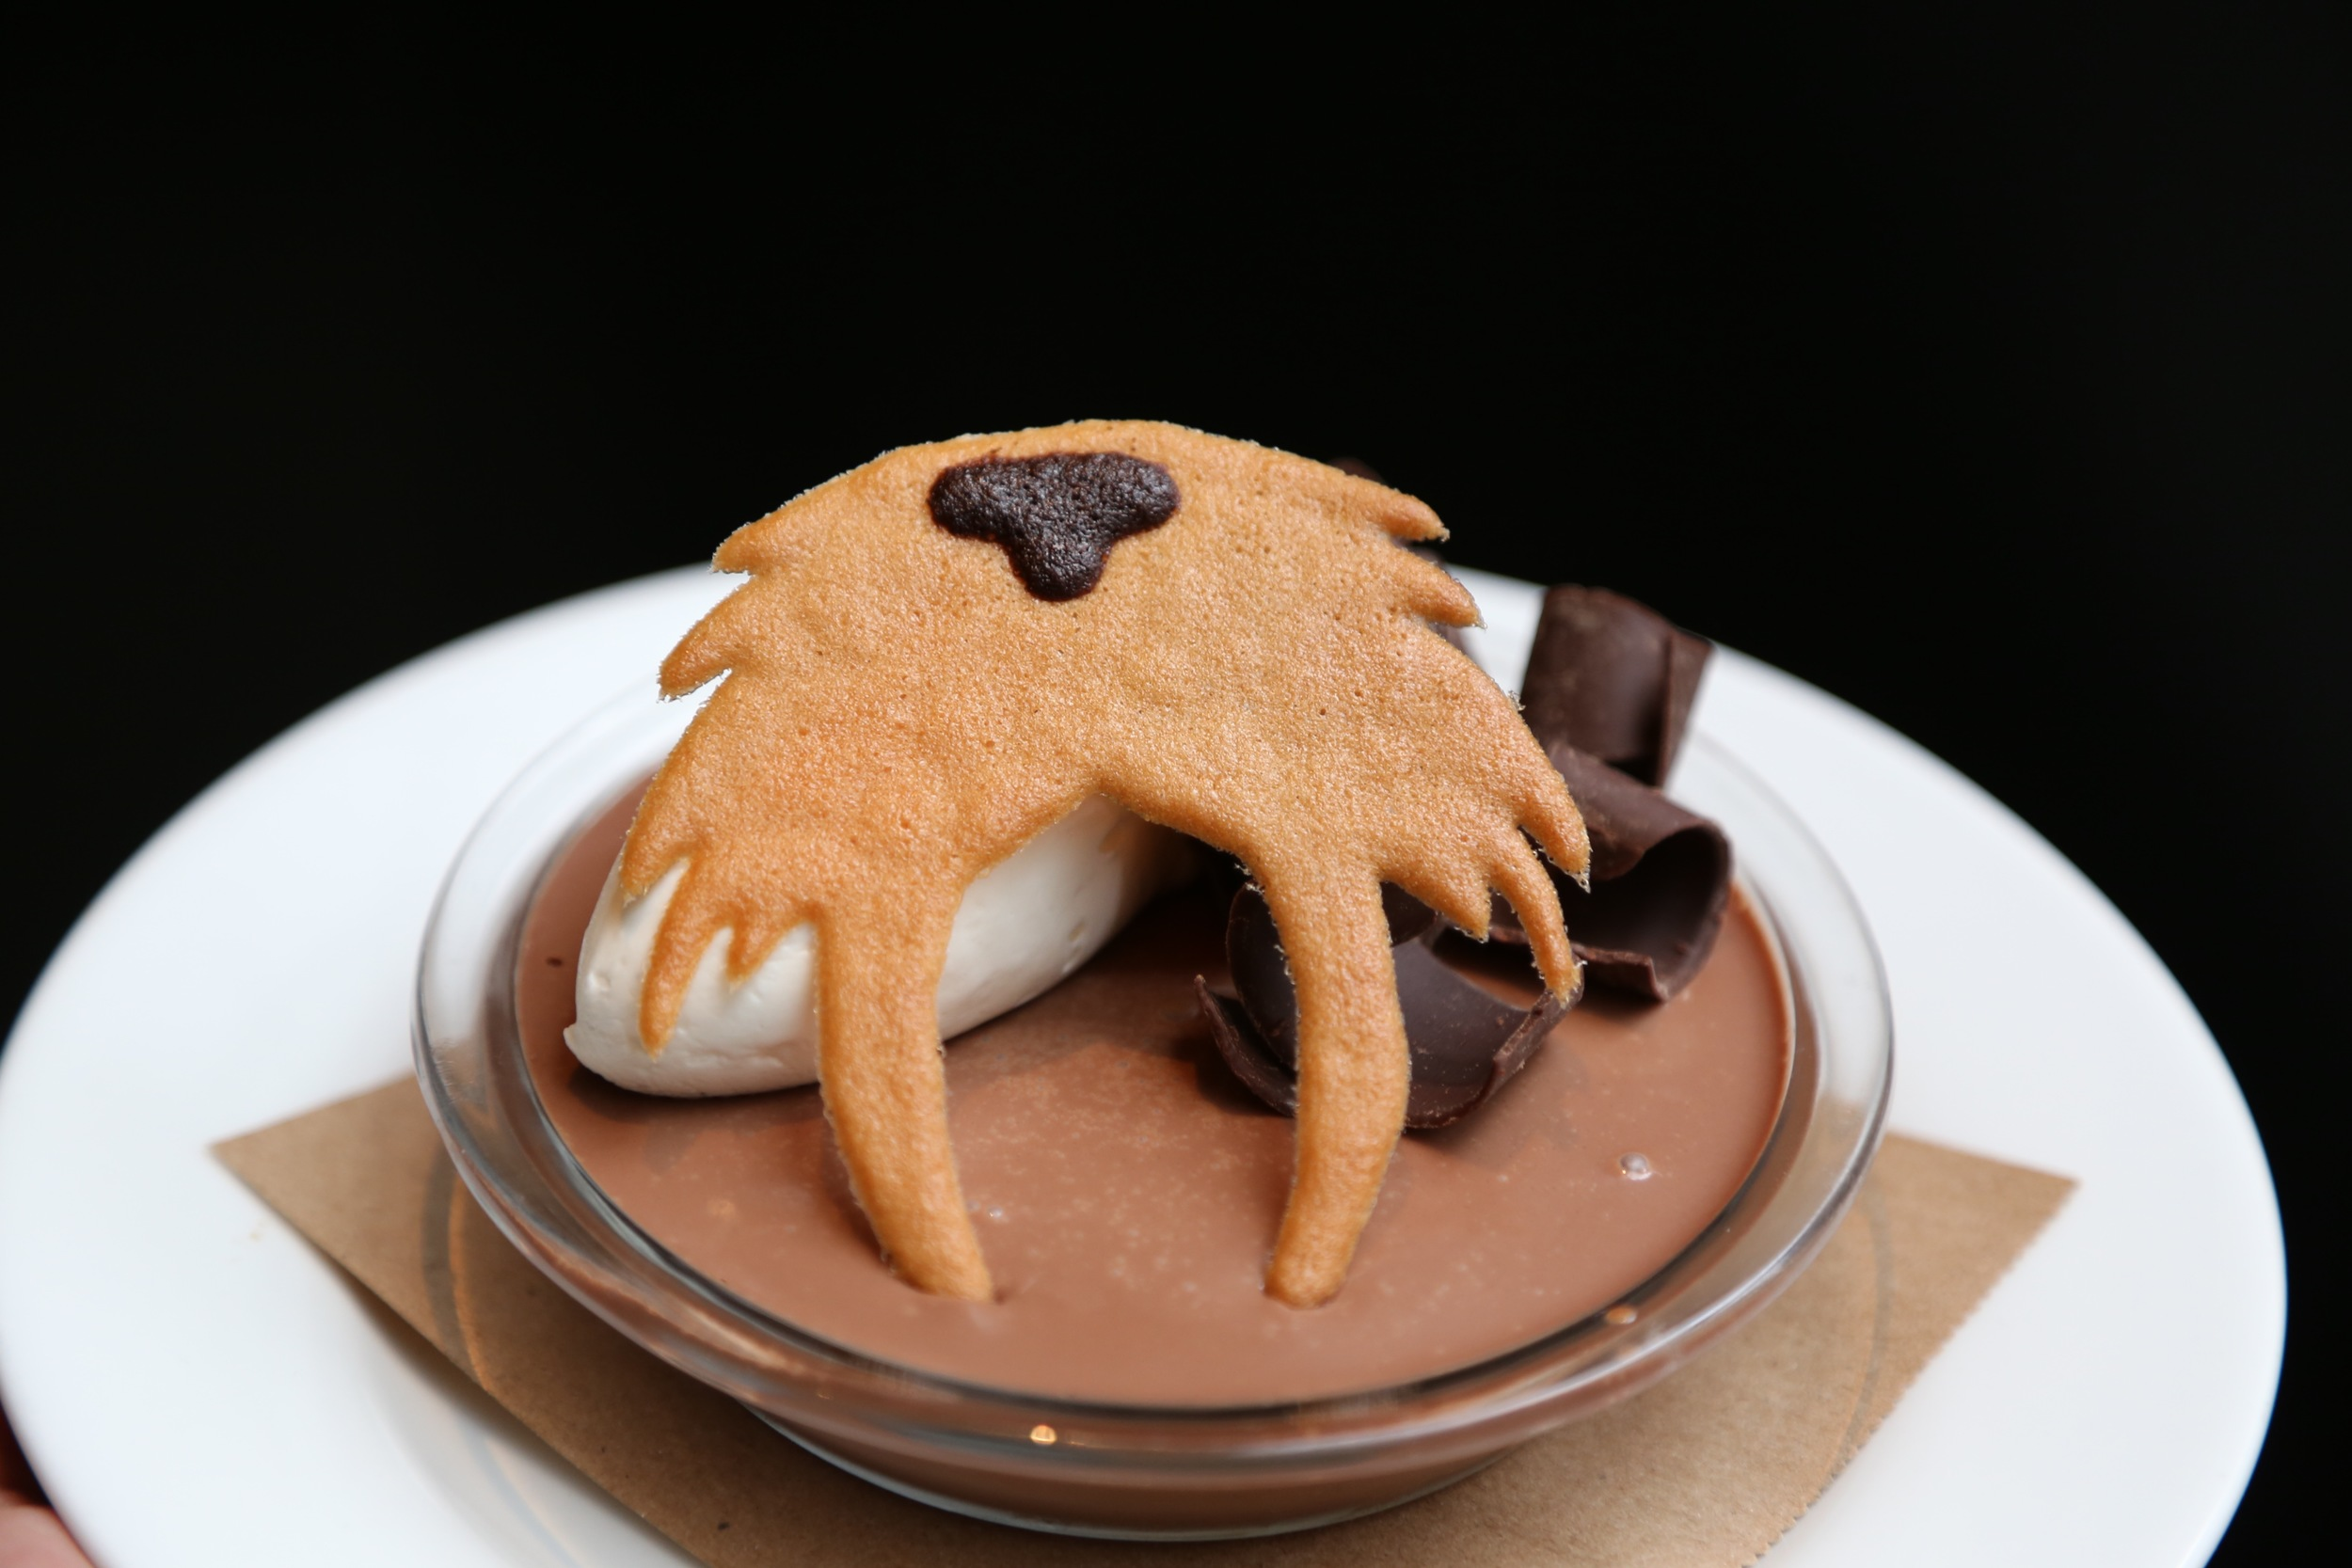 chocolate mousse dessert with walrus cookie